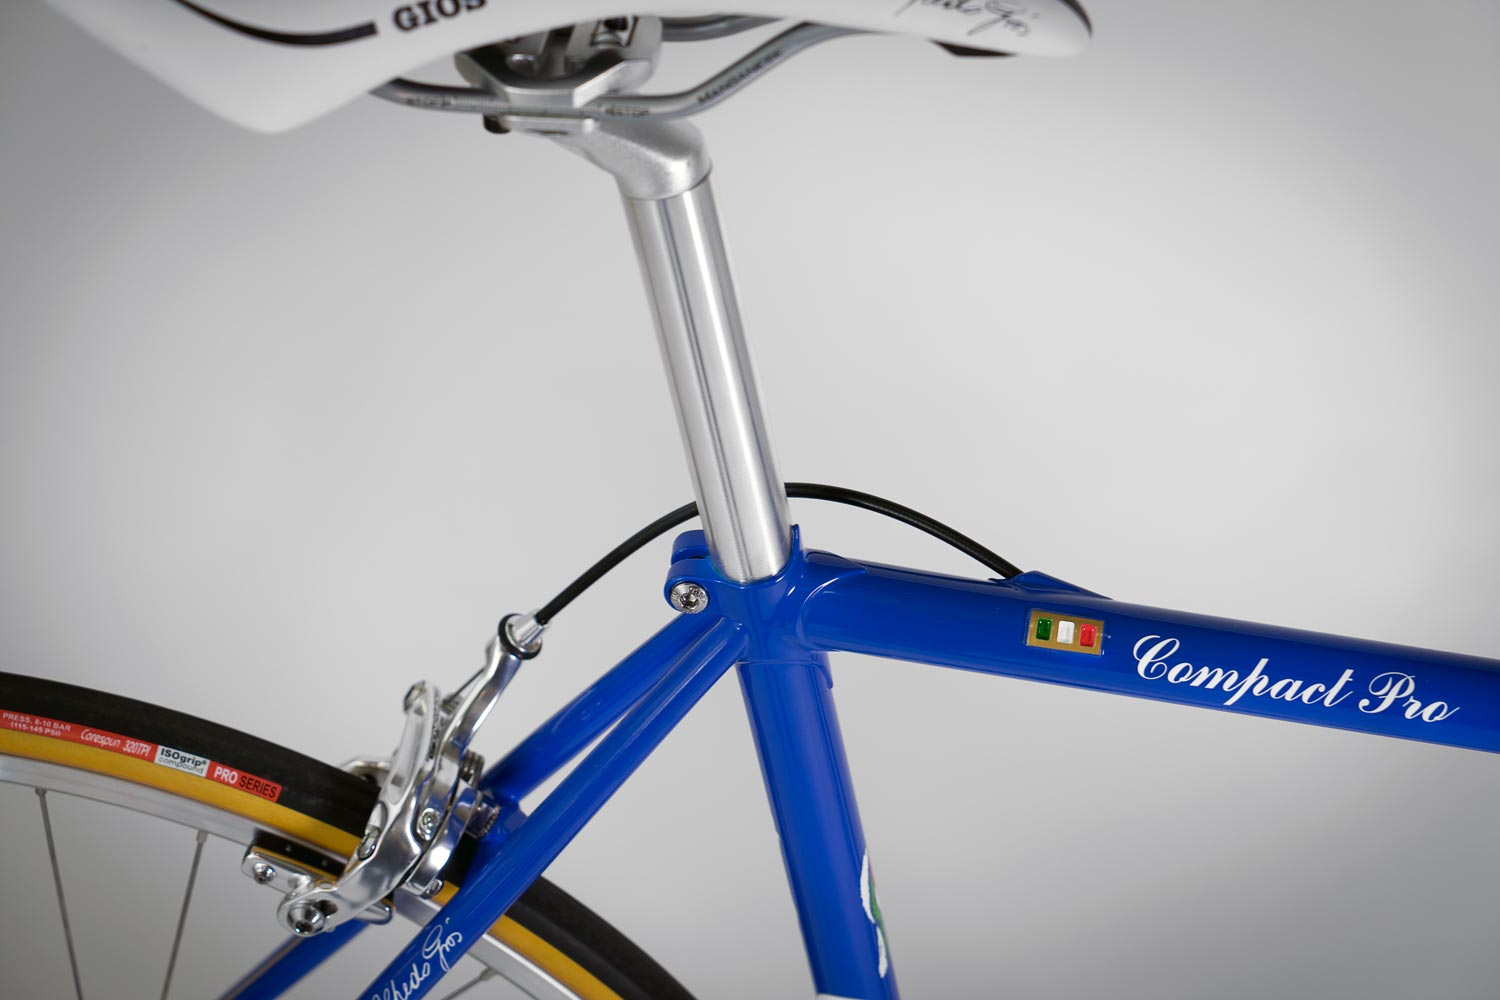 gios-compact-pro-detail-31